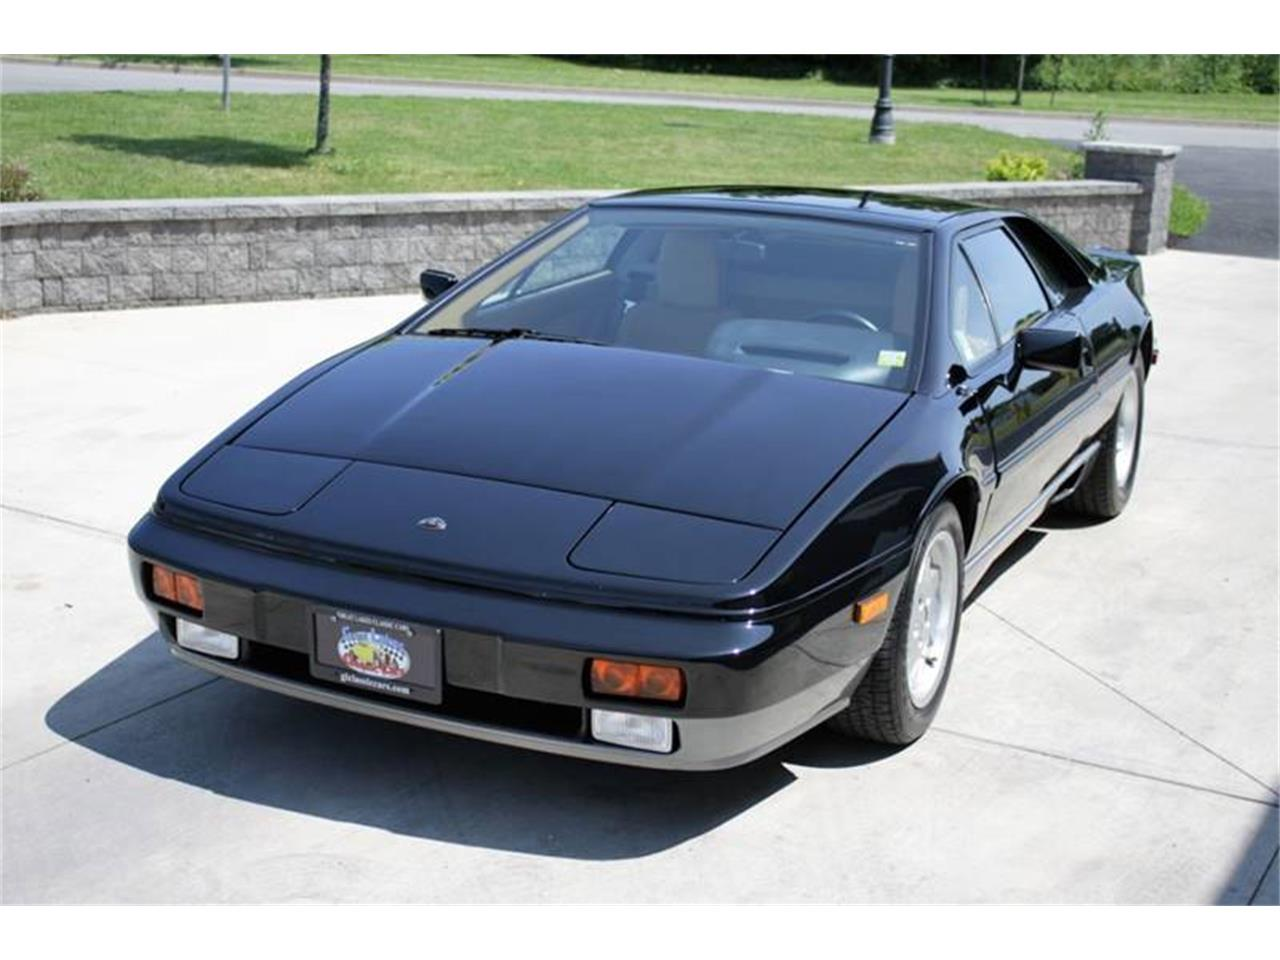 Large Picture of 1988 Esprit - $26,495.00 - QE3Z